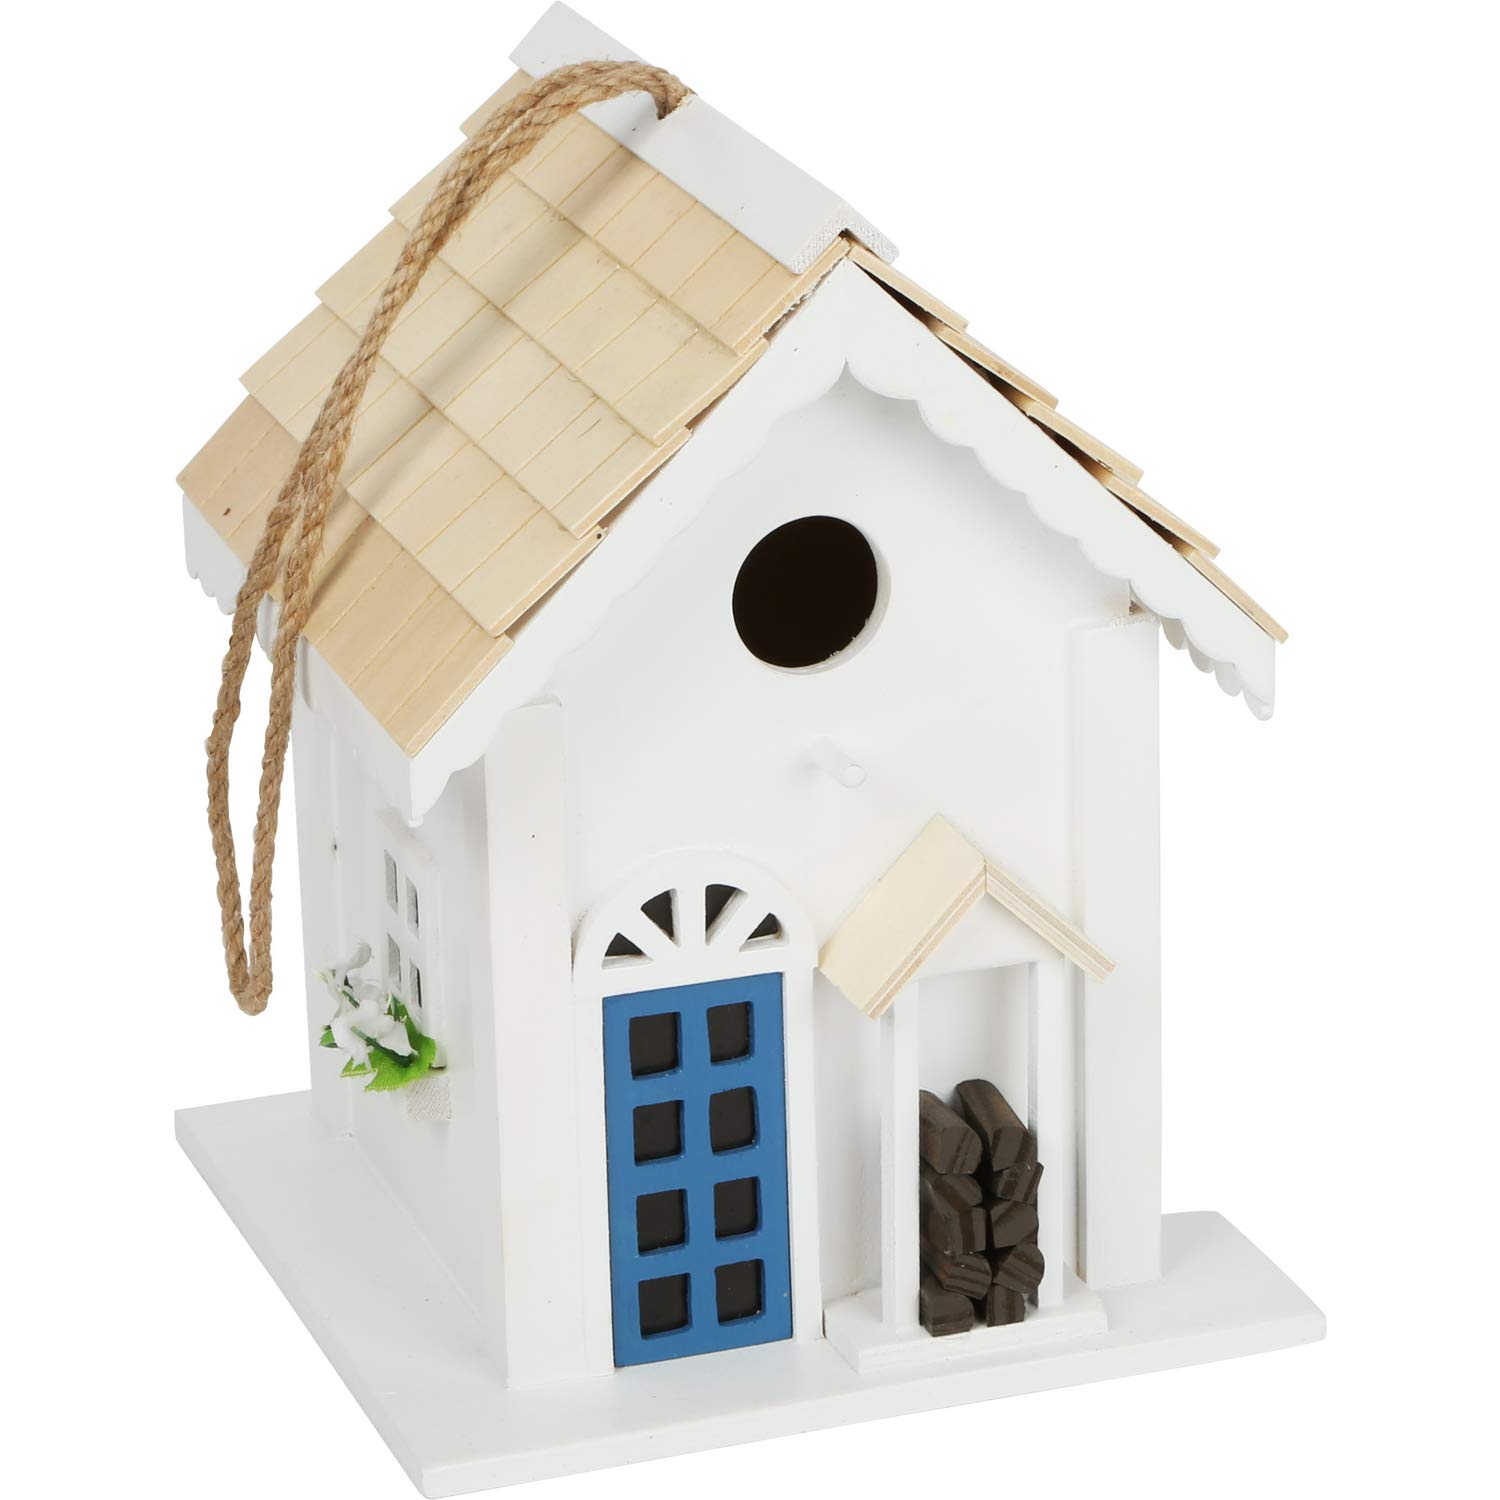 Wooden Birdhouse Country Cottage Style For Hanging Up Decorative Nesting Box For The Garden